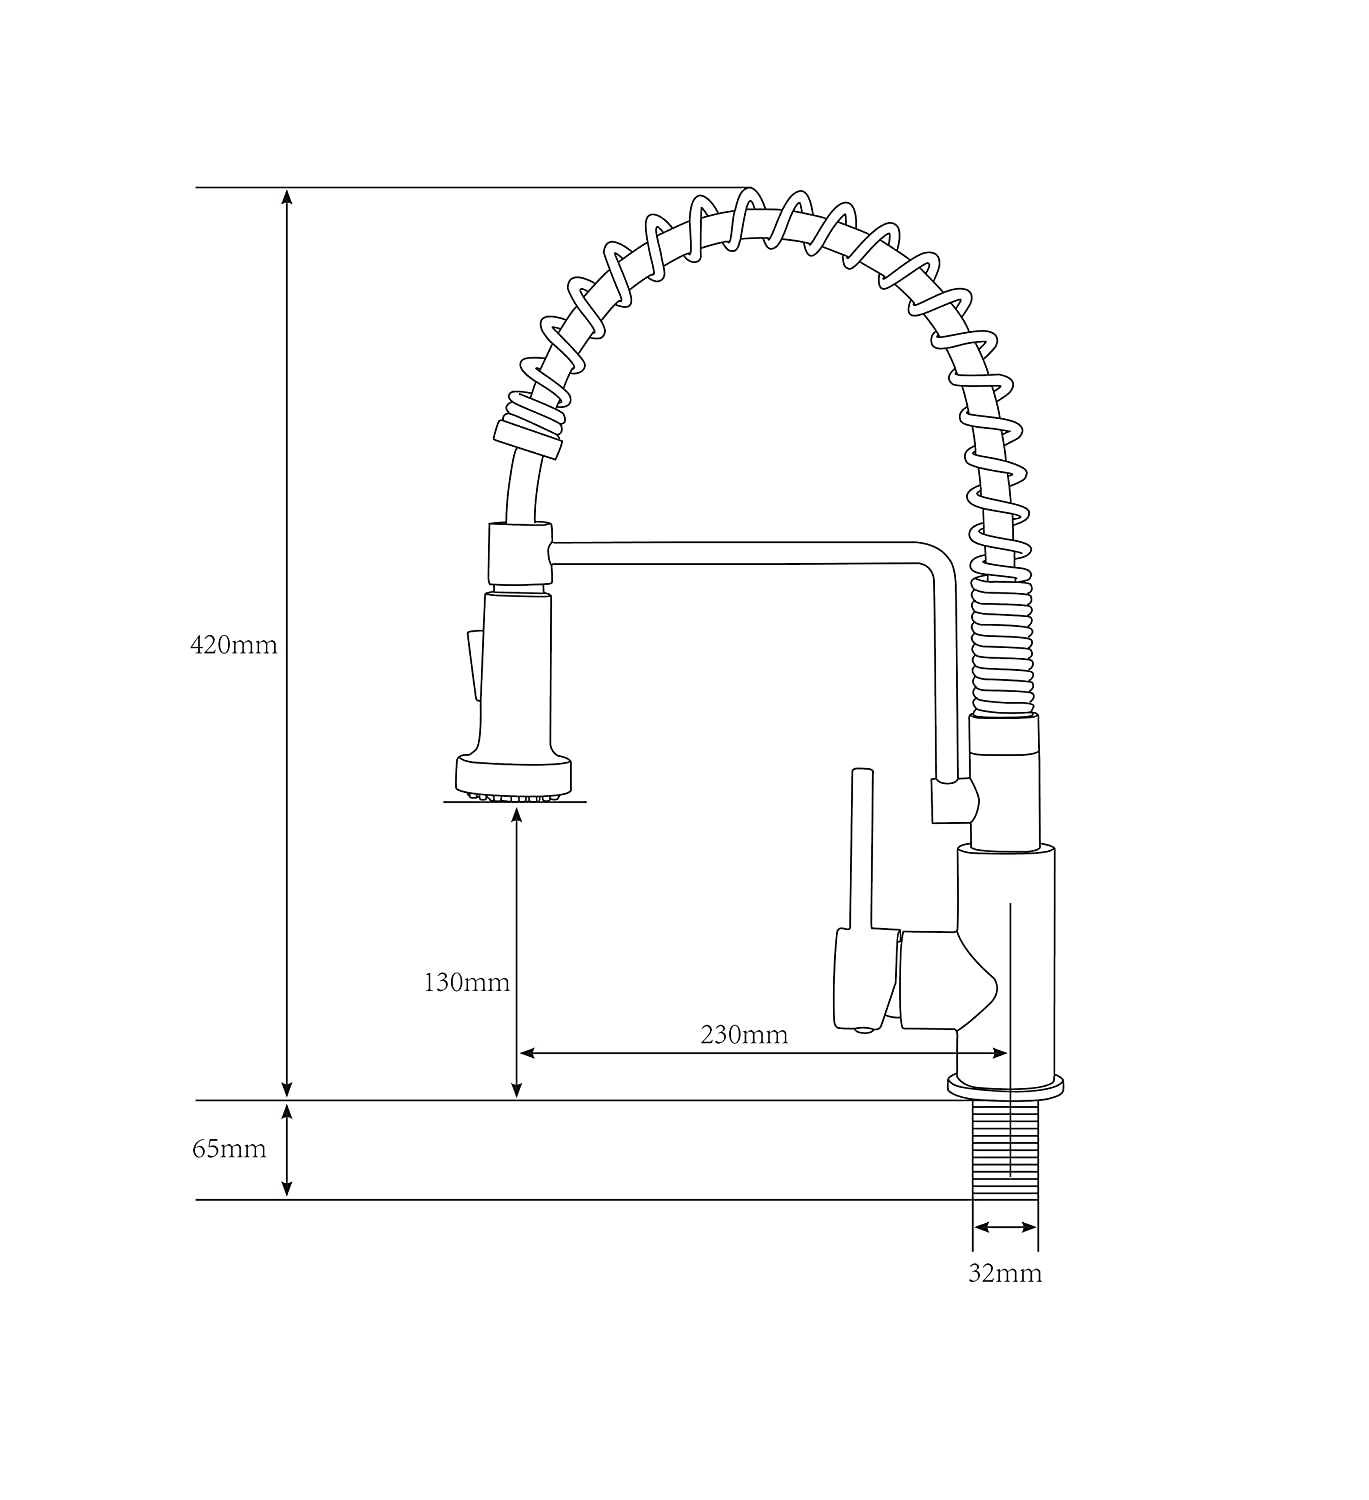 Parts Diagram For Gourmet Single Handle Kitchen Faucet 150 450 Friho Lead Free Commercial Brushed Nickel Stainless Steel Lever Pull Out Down Sprayer Spring Sink